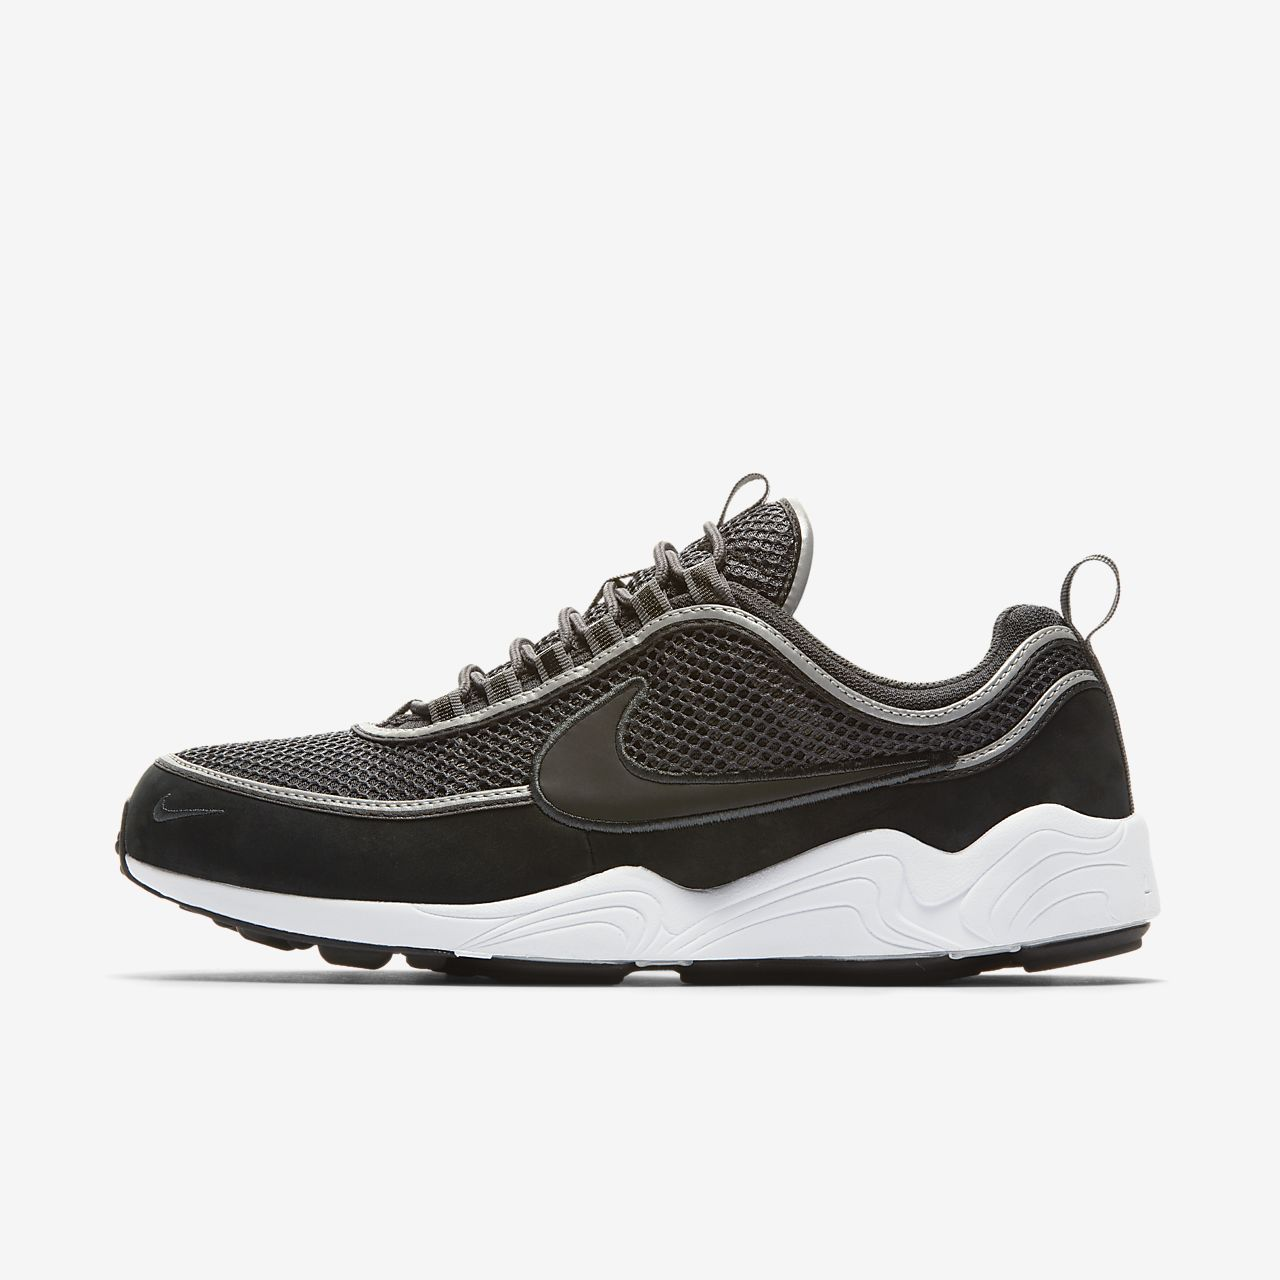 Découvrez Populaire Nike Air Zoom Spiridon Homme Chaussure Pas Cher Royer3602037